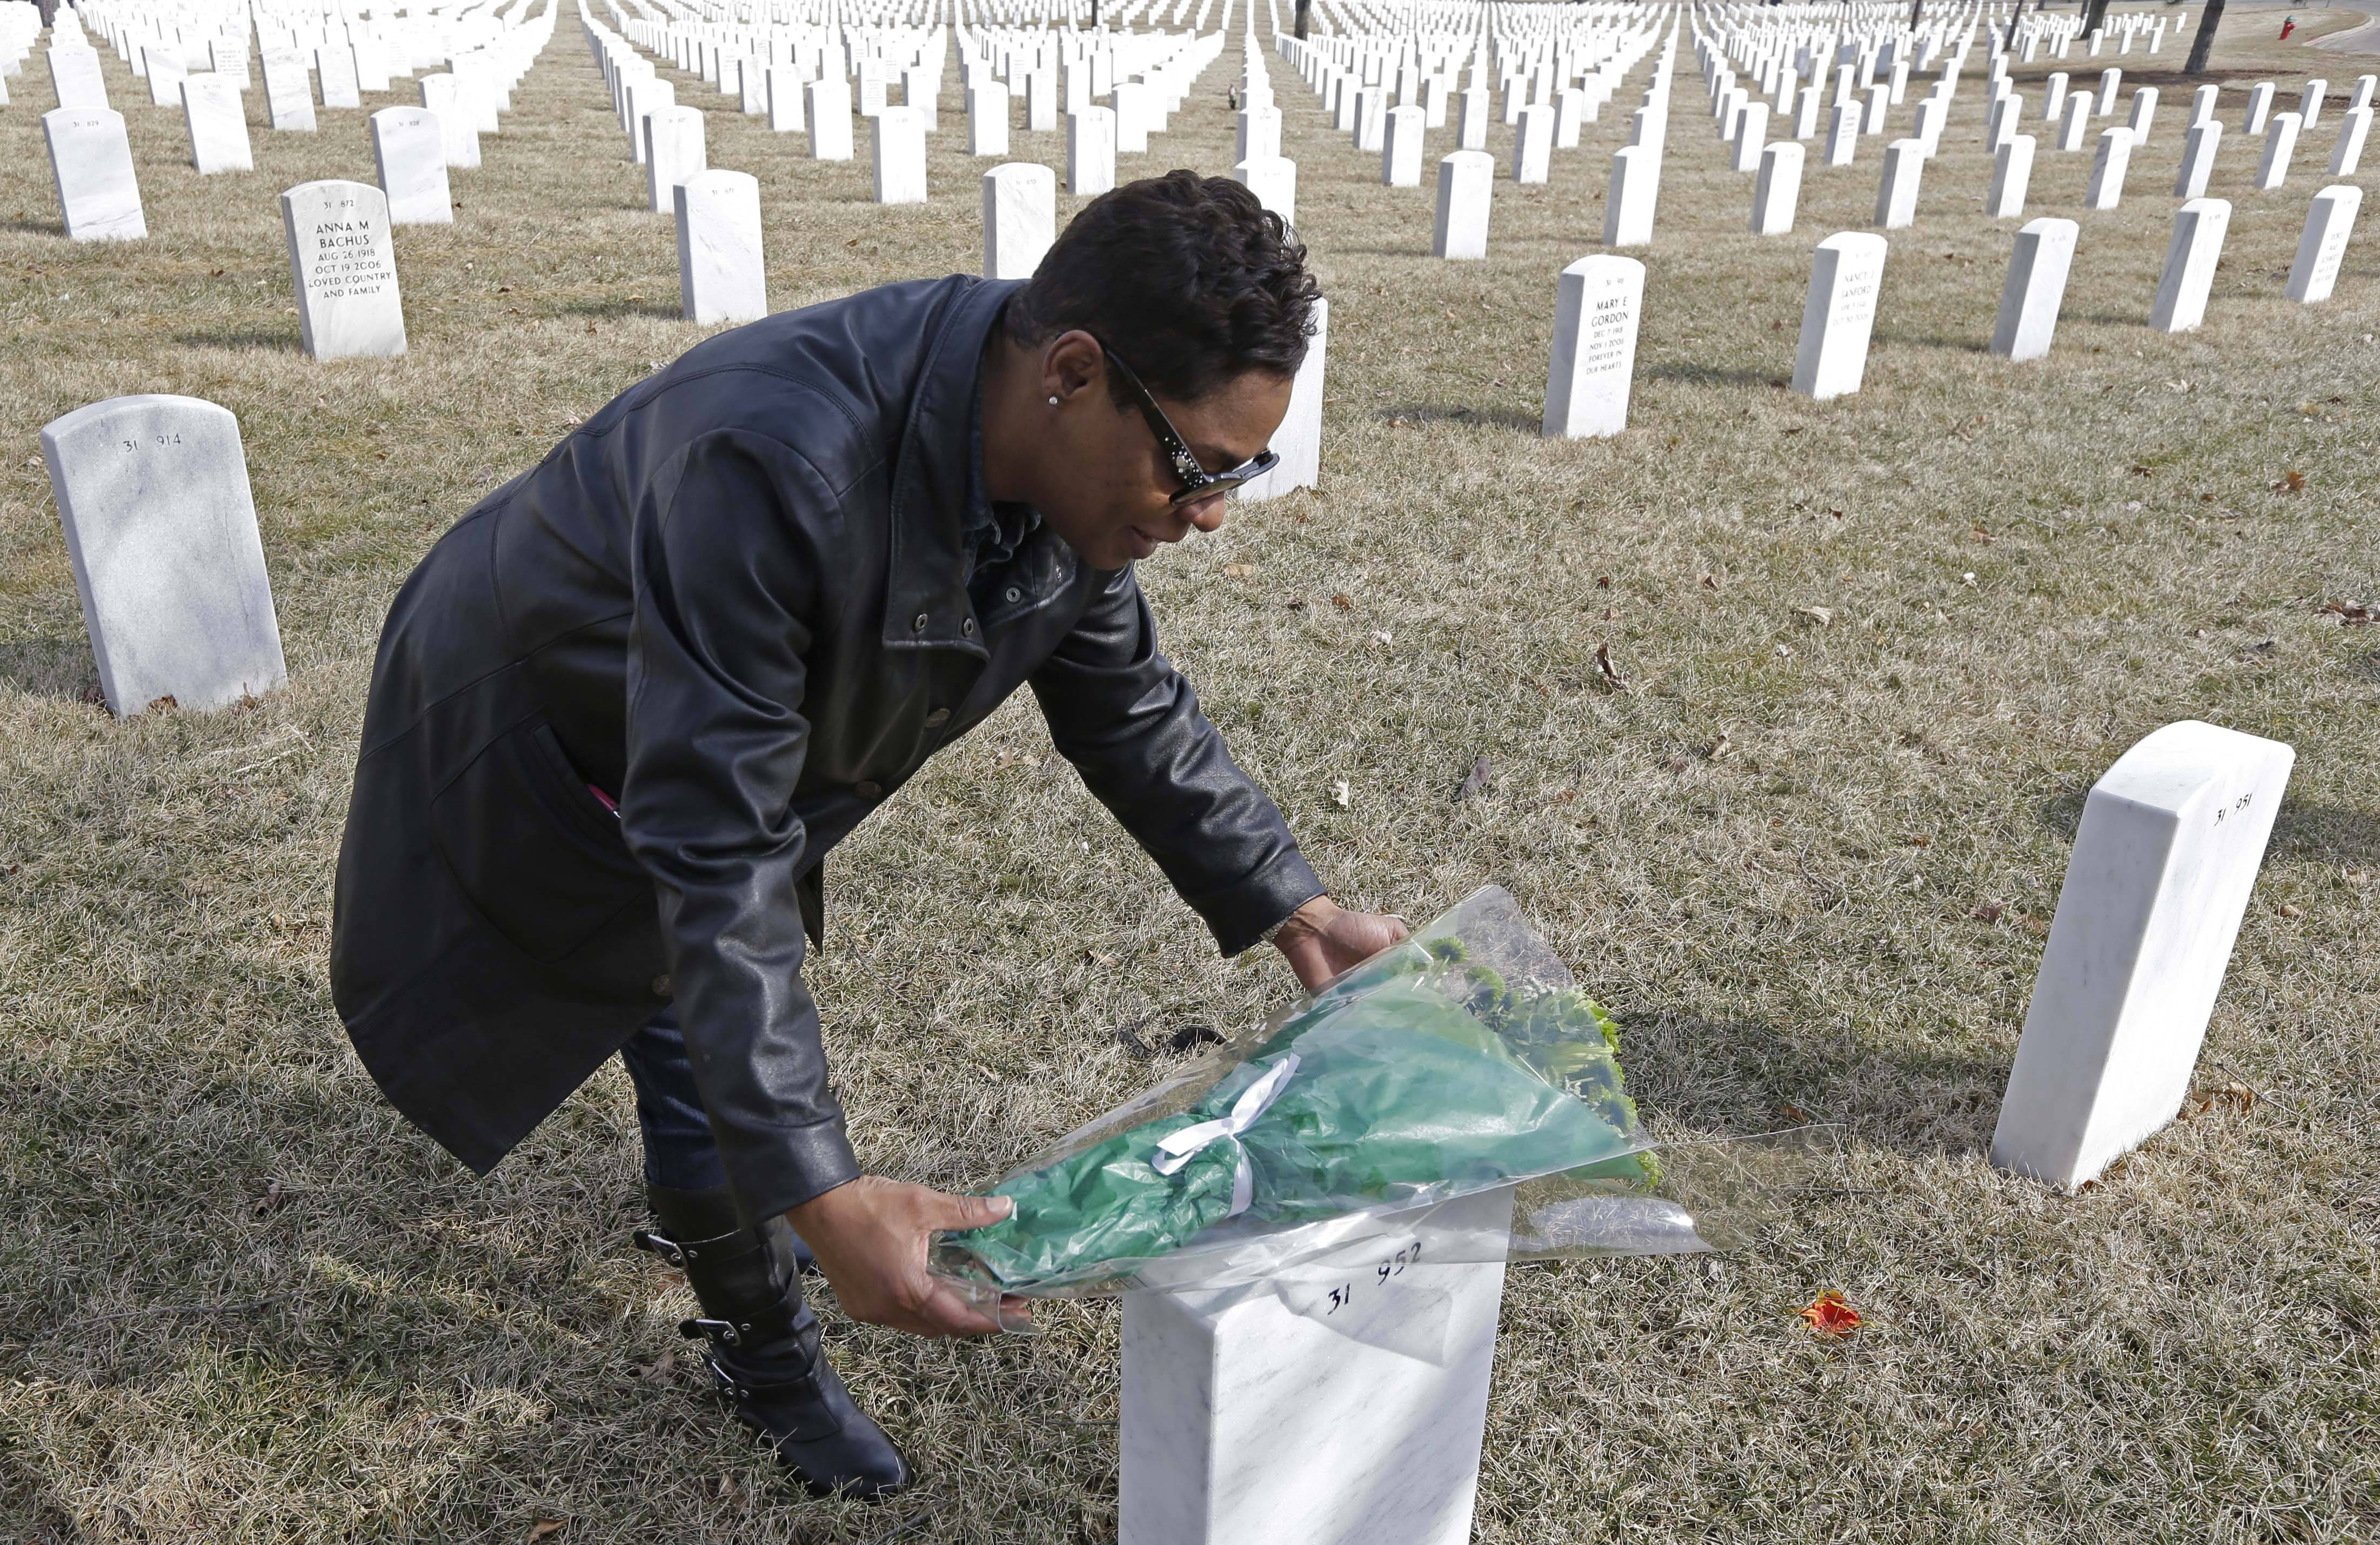 Dellaina Grundy places flowers on her father's headstone, Army veteran Leroy Metcalfe, last Saturday at the Dayton National Cemetery in Dayton, Ohio. Grundy isn't sure whether any or all of the cremated remains buried in the grave are his and knows that mystery will never be solved.